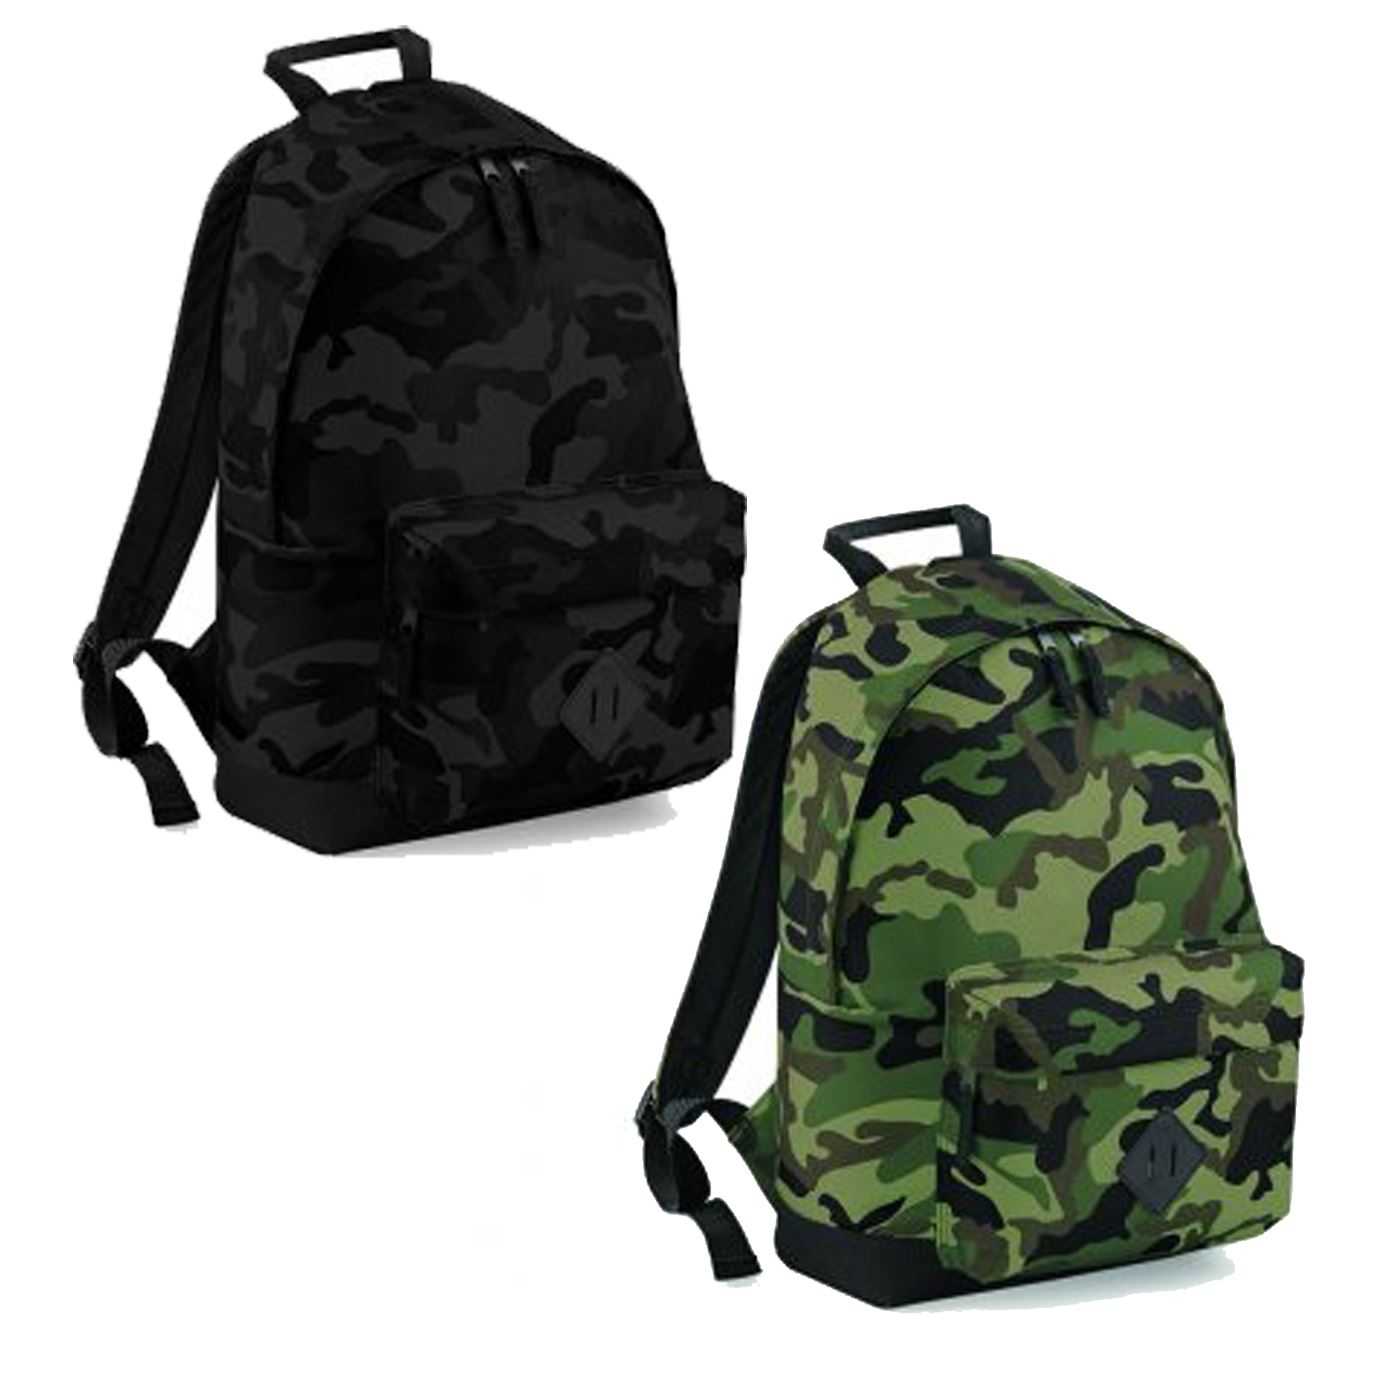 Camouflage Backpack With Wheels- Fenix Toulouse Handball 6ce8f78a49166